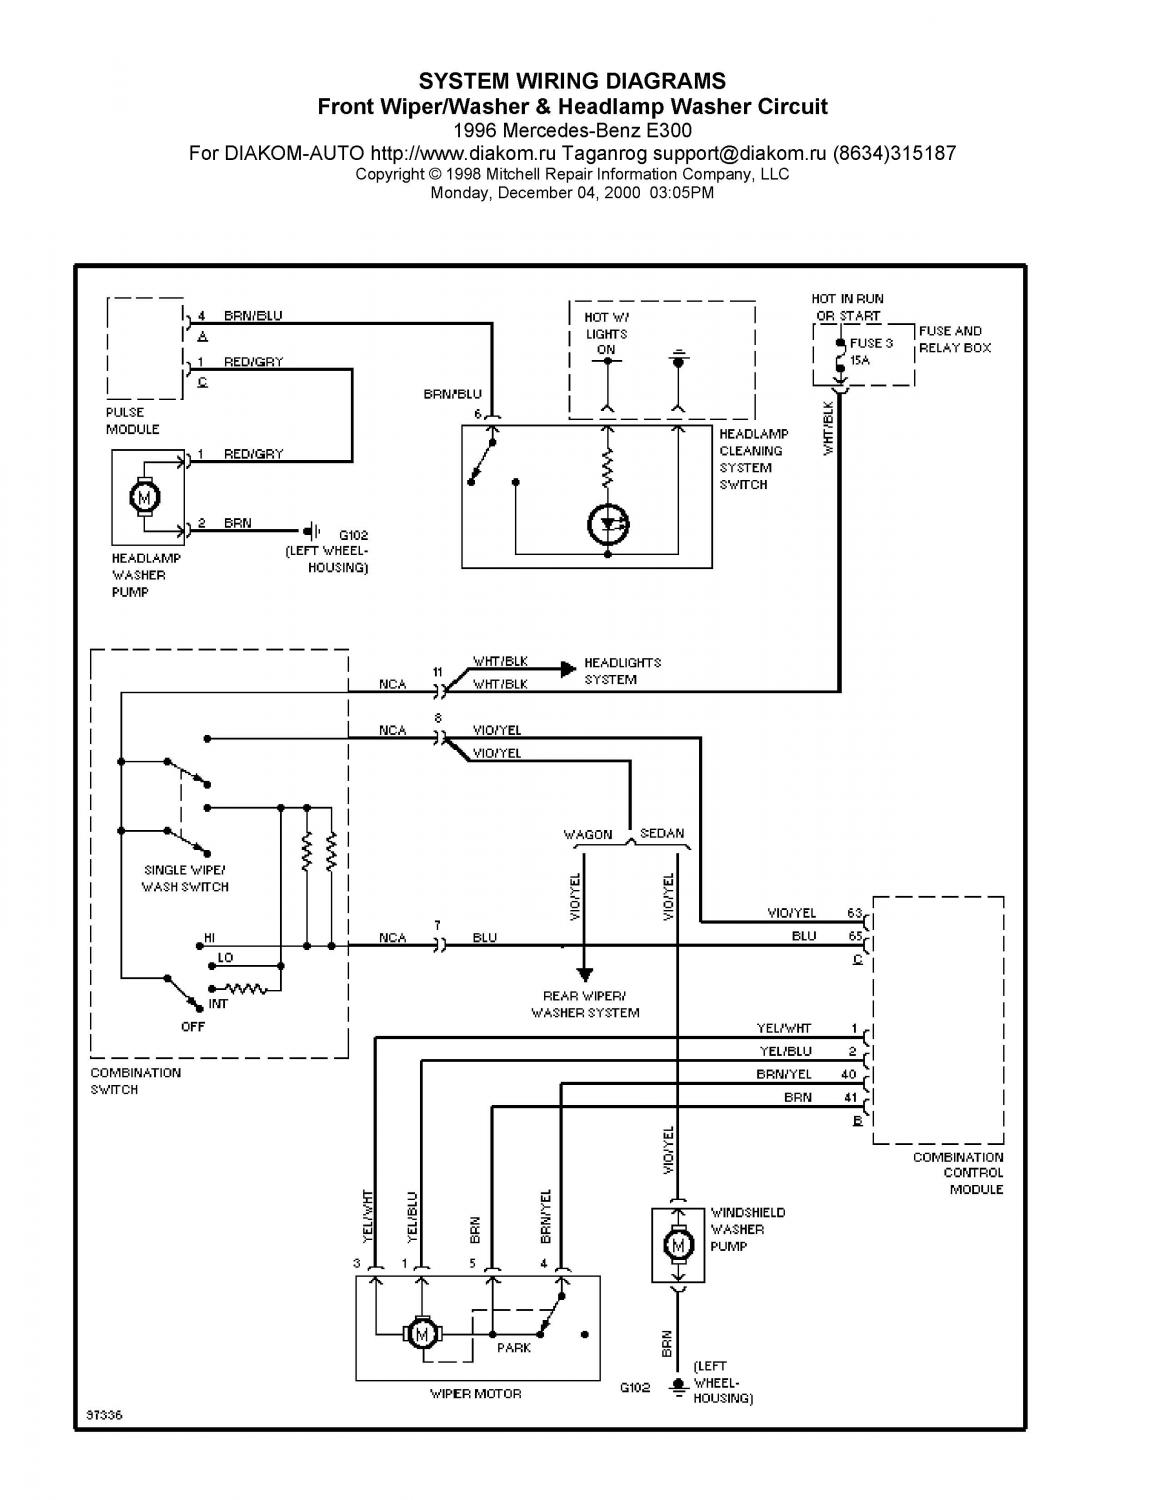 DIAGRAM] Lexus E300 1995 Wiring Diagram FULL Version HD Quality Wiring  Diagram - HASSEDIAGRAM.ARKIS.ITarkis.it